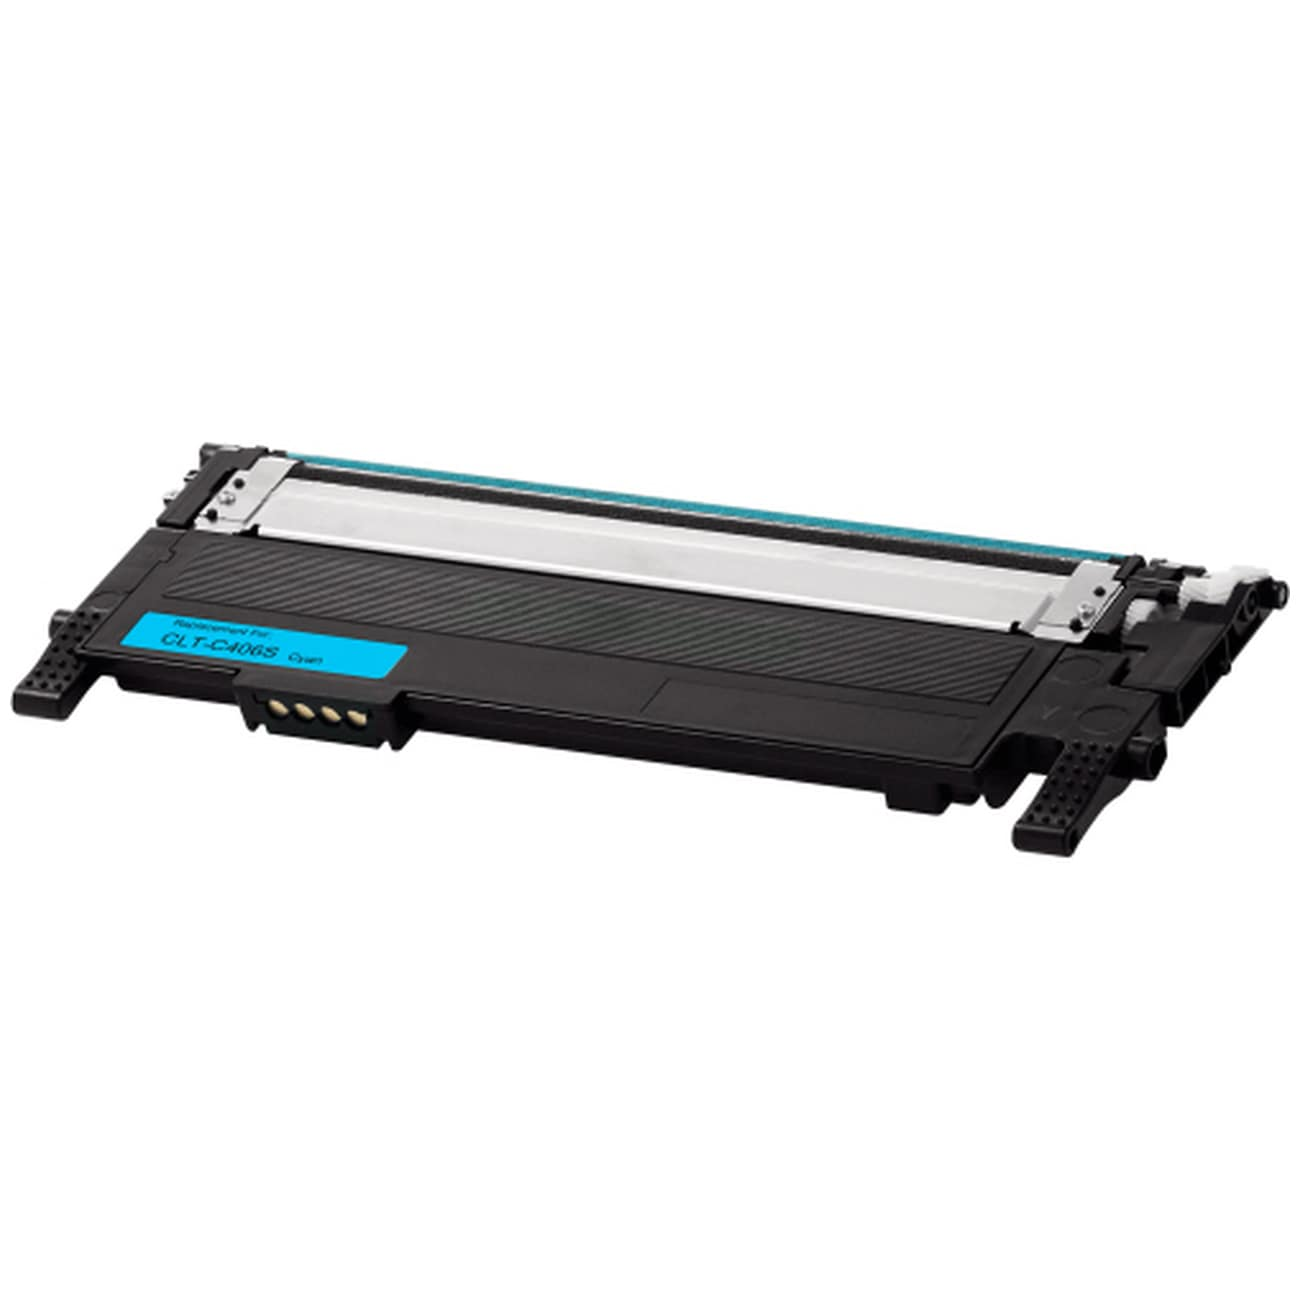 CLT-C406S Toner Cartridge - Samsung Compatible (Cyan)